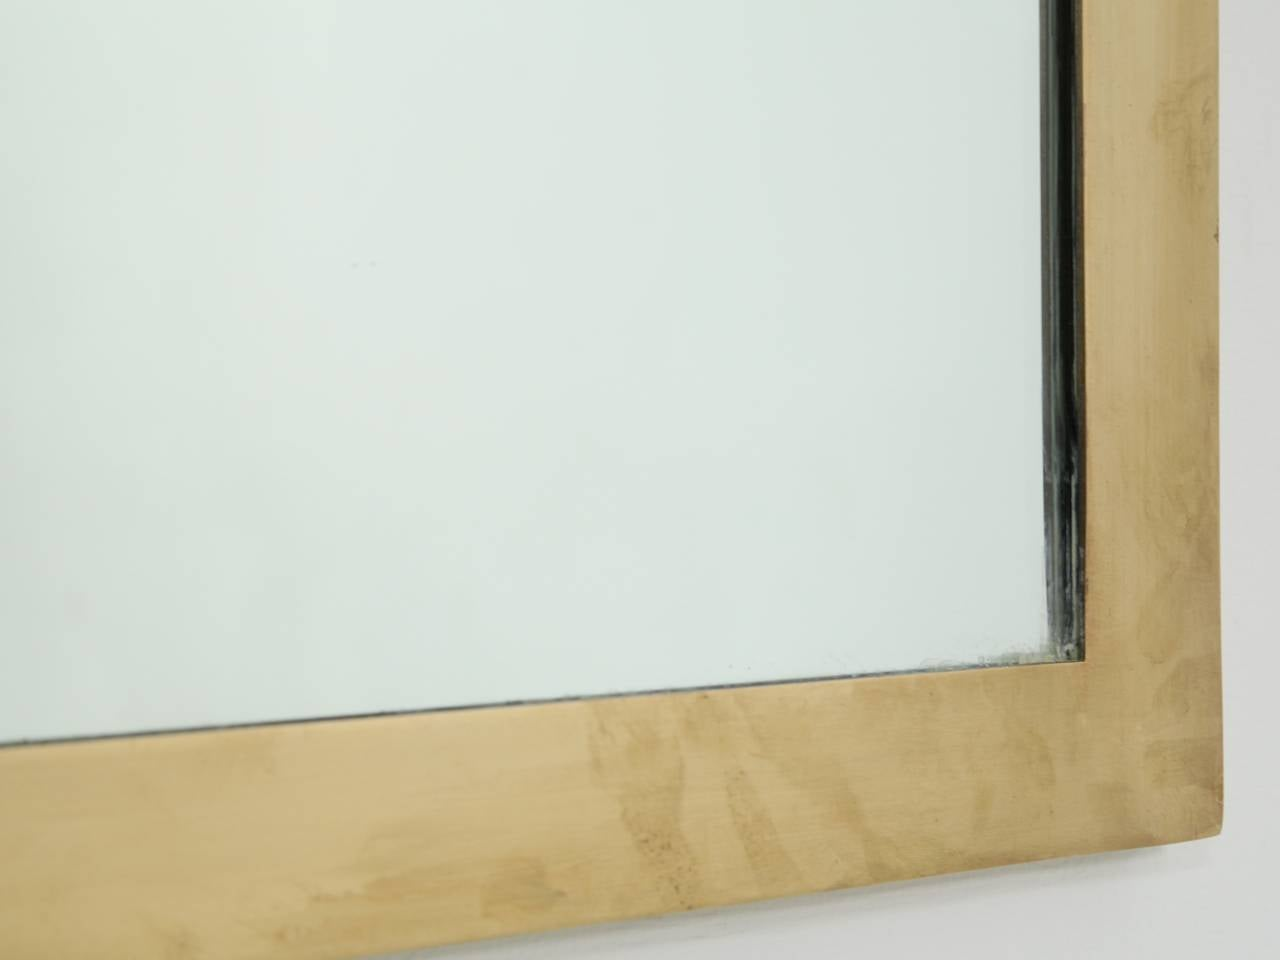 Rectangular Italian wall mirror with heavy brass frame, 1950s at 1stdibs